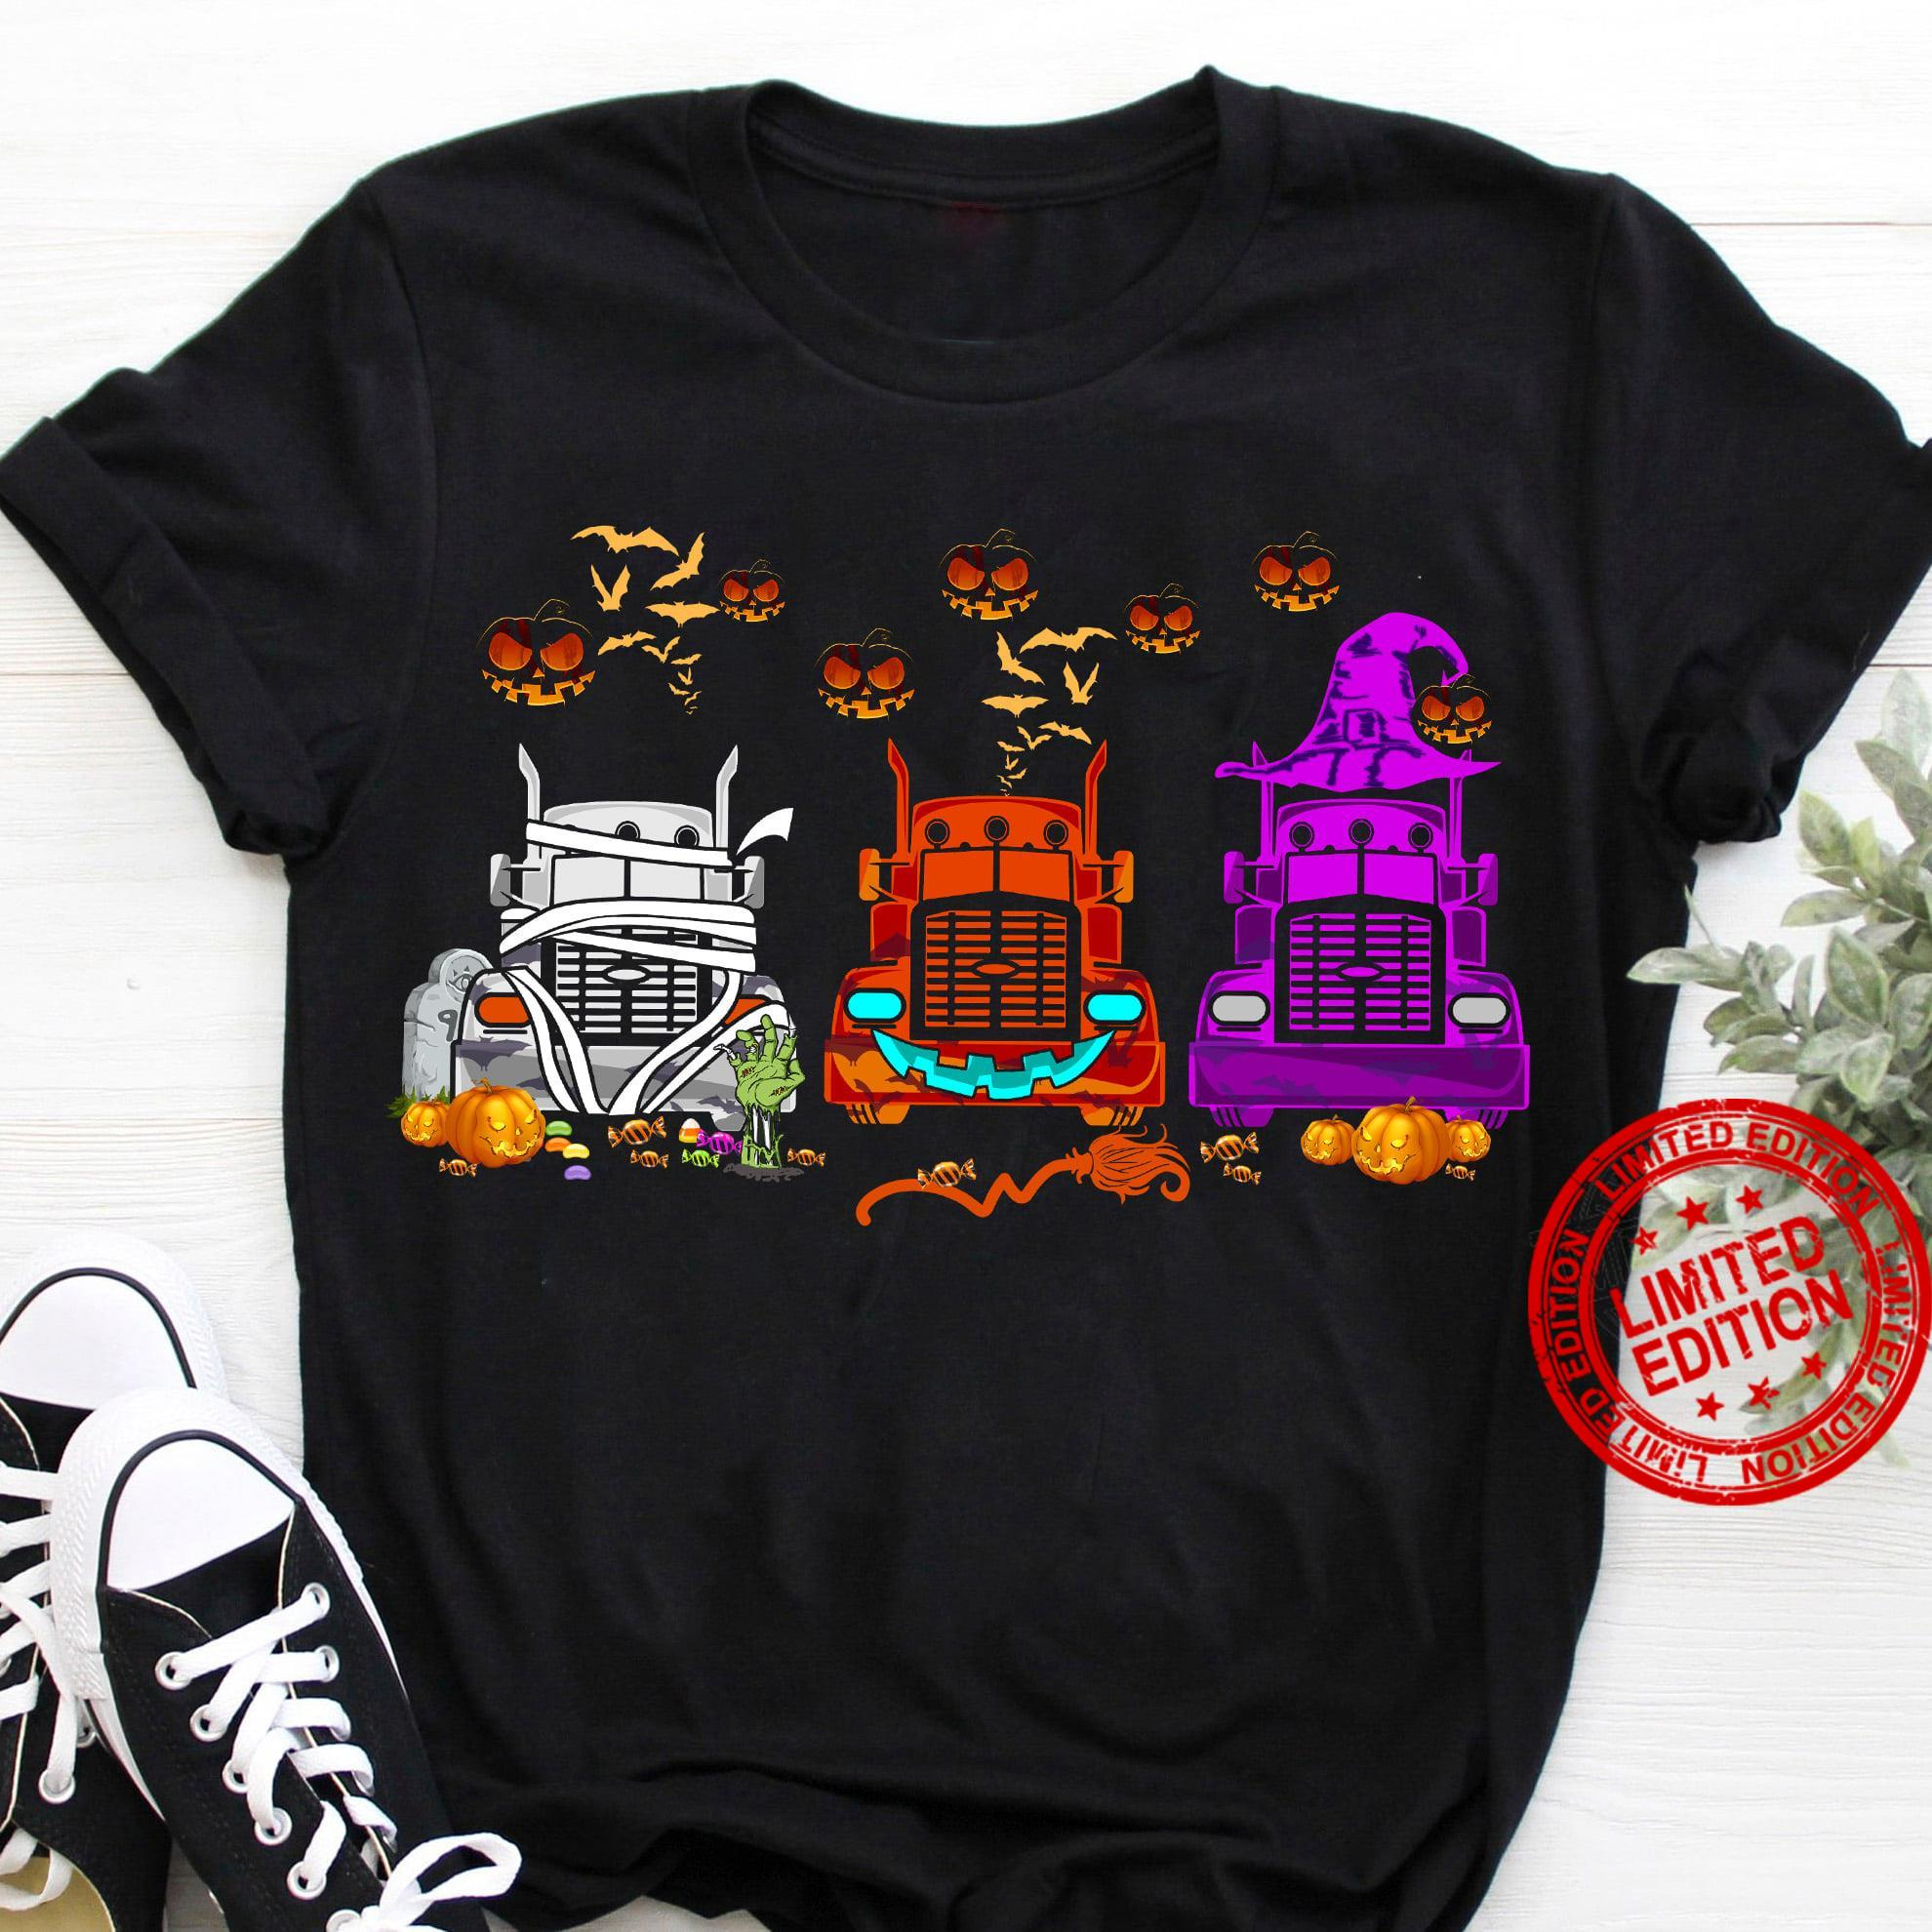 Trucker Halloween Shirt